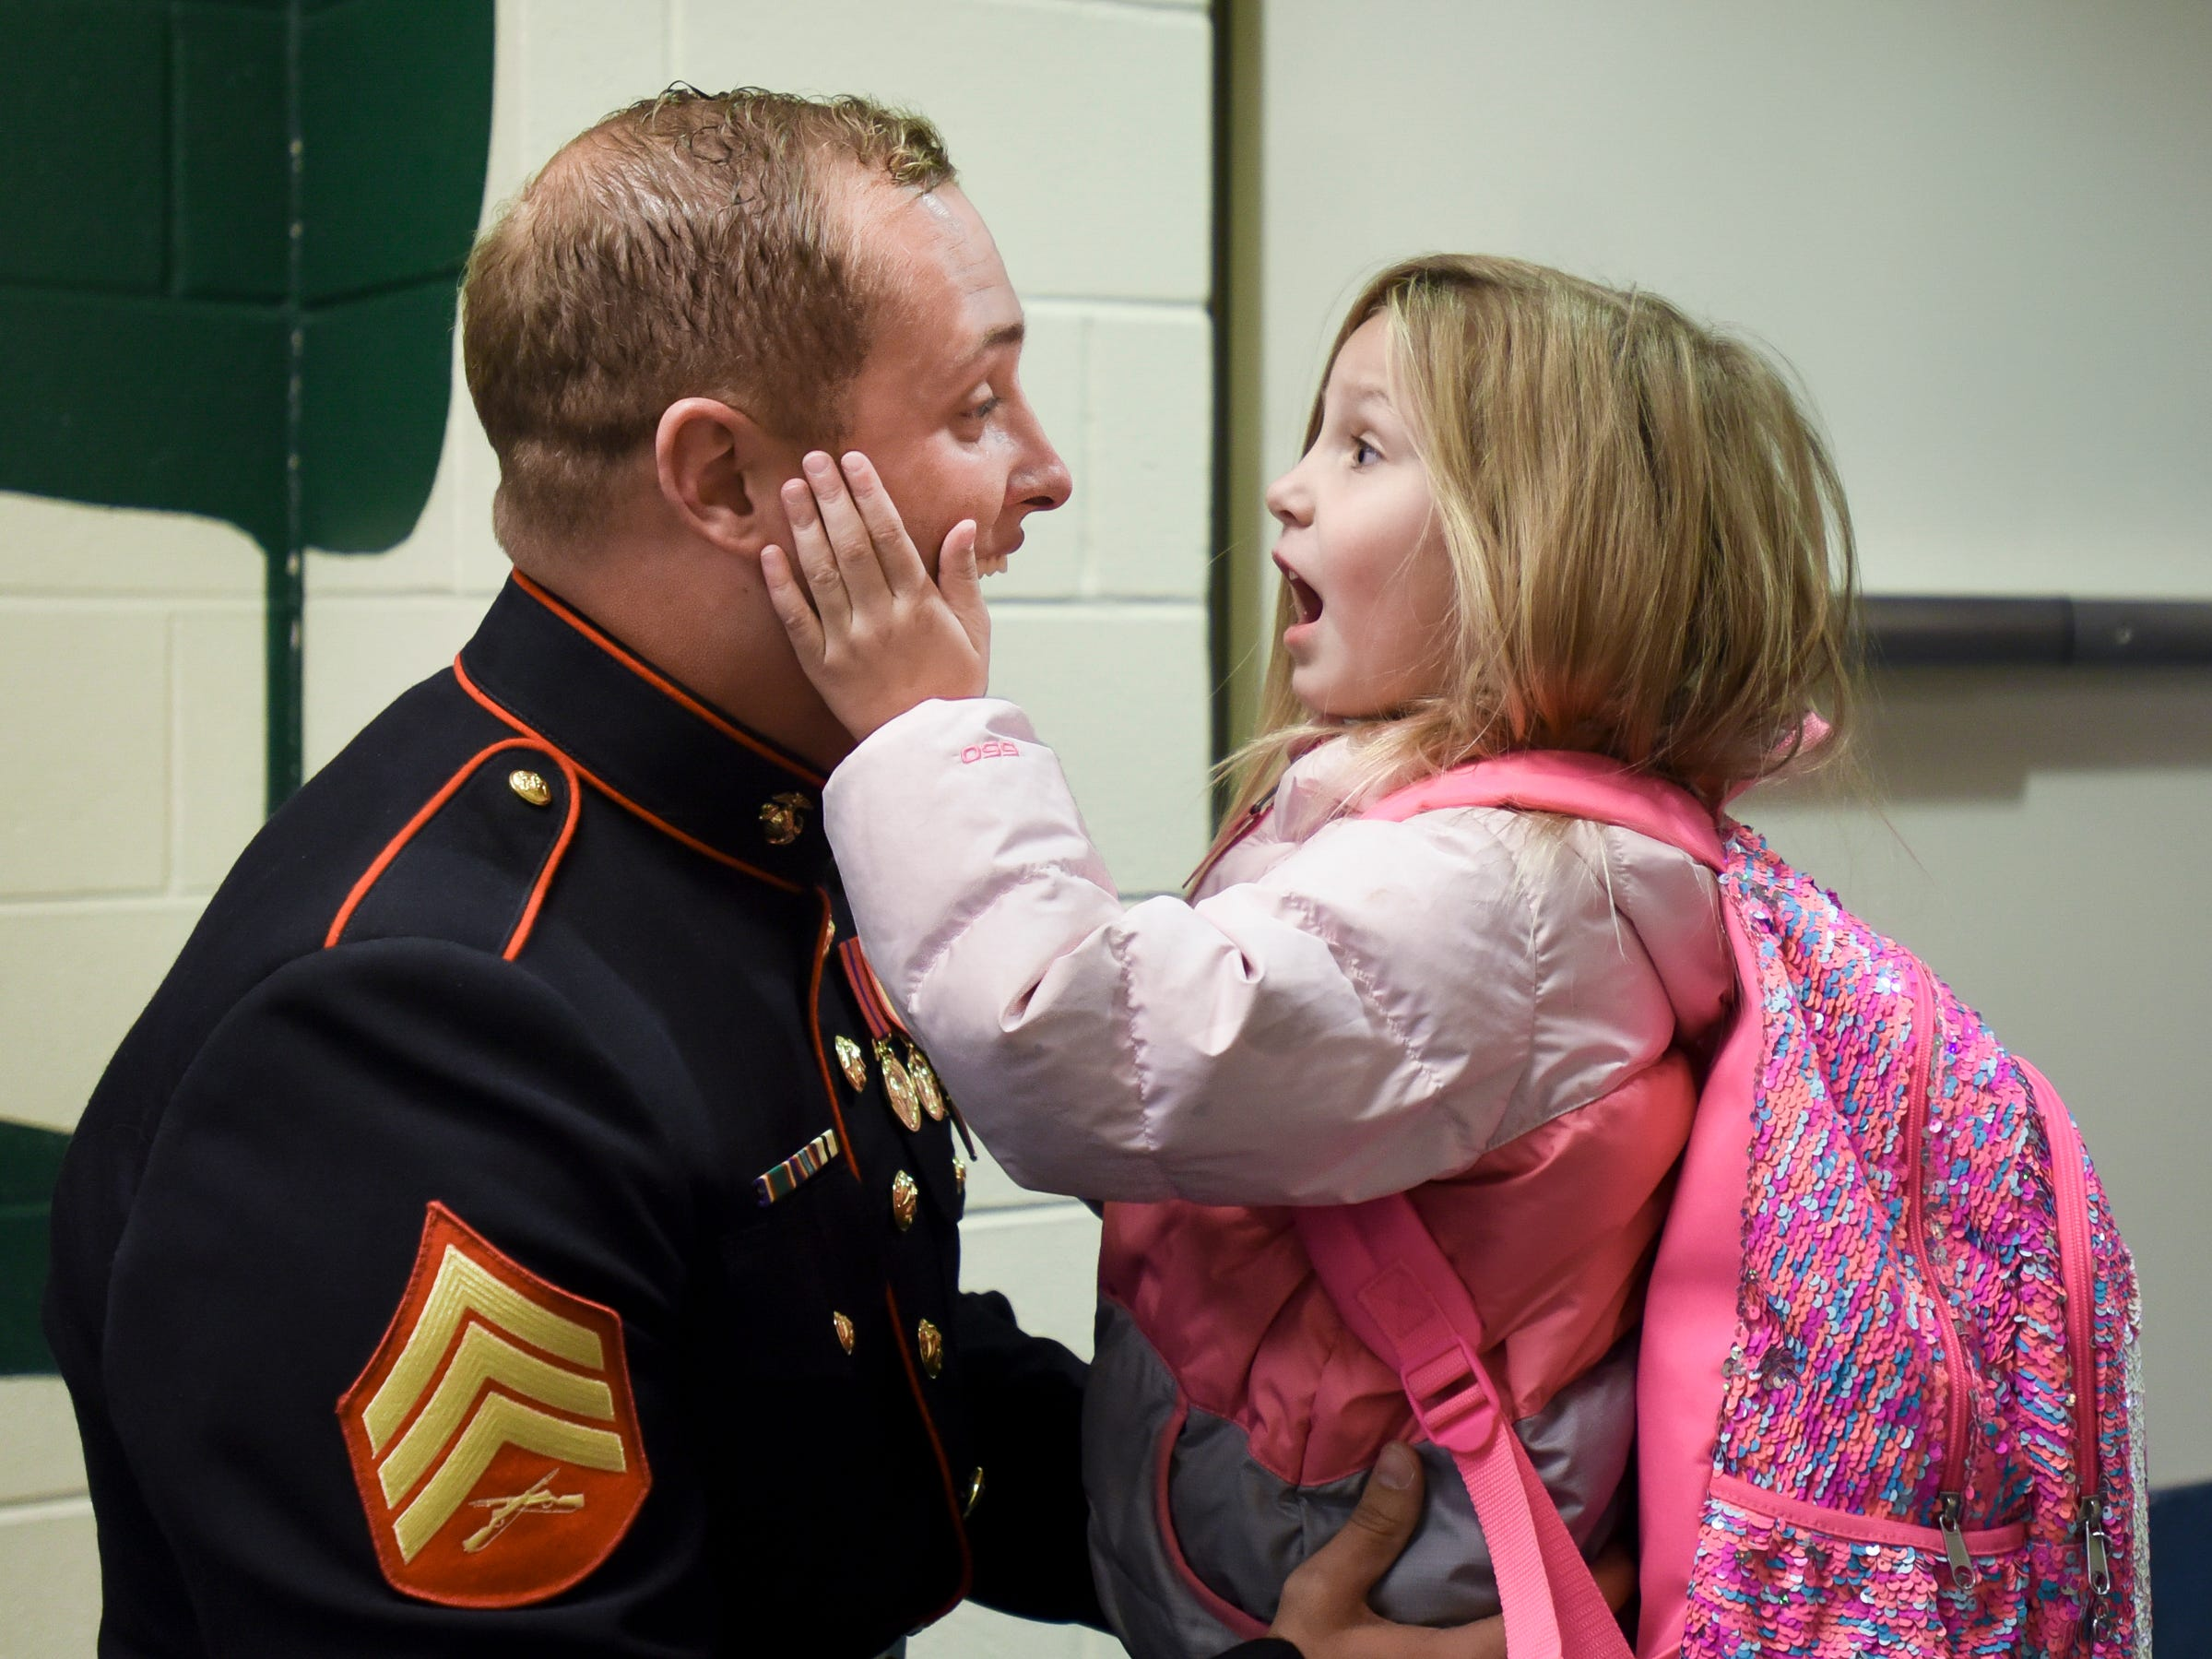 Tears fall from Marine Sgt. Cameron Spiece's eyes, as four-year-old daughter Graycen cups his face, Thursday afternoon, Oct. 25, 2018, at Oakview South Elementary School in St. Johns.  Sgt. Spiece was discharged Wednesday, after spending about a year recovering from a traumatic brain injury caused when a rocket blew up in his face during combat training in North Carolina.  Sgt. Spiece also suffered hand and nerve damage due to the accident.  He has been in the Marine Corps for the past six years.